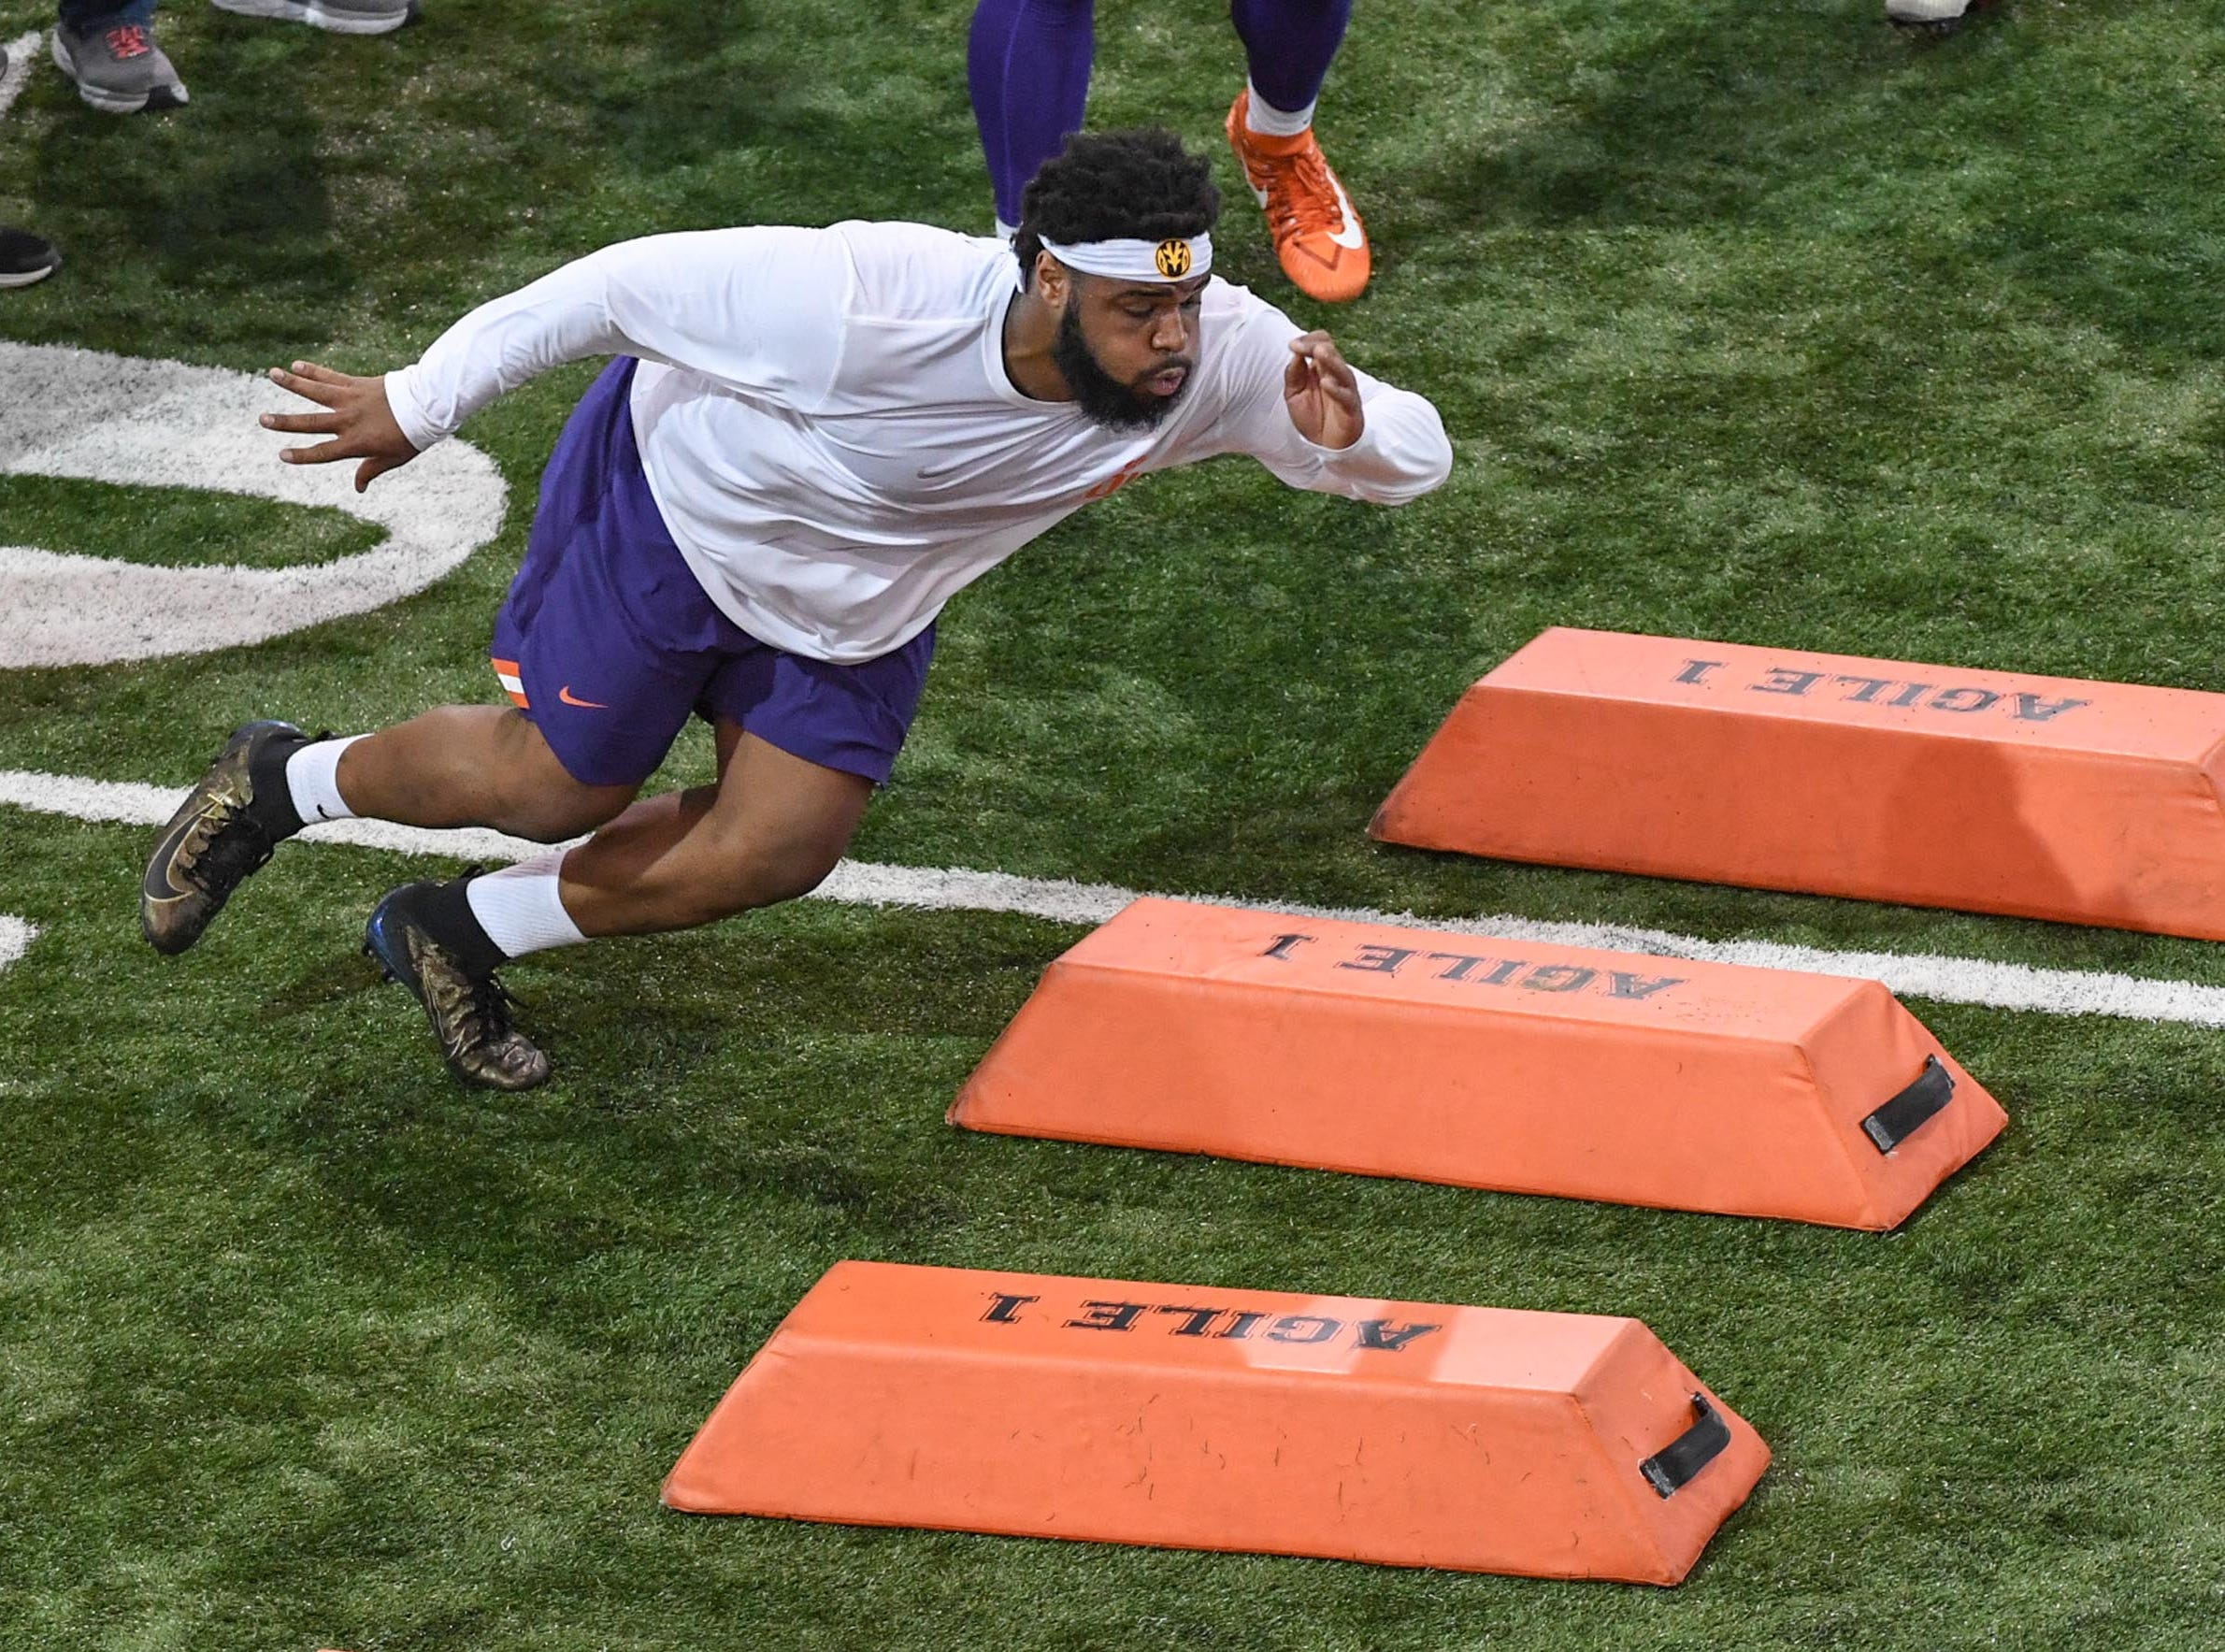 Defensive lineman Christian Wilkins runs through barriers during Clemson pro day at the Poe Indoor Facility in Clemson Thursday, March 14, 2019.